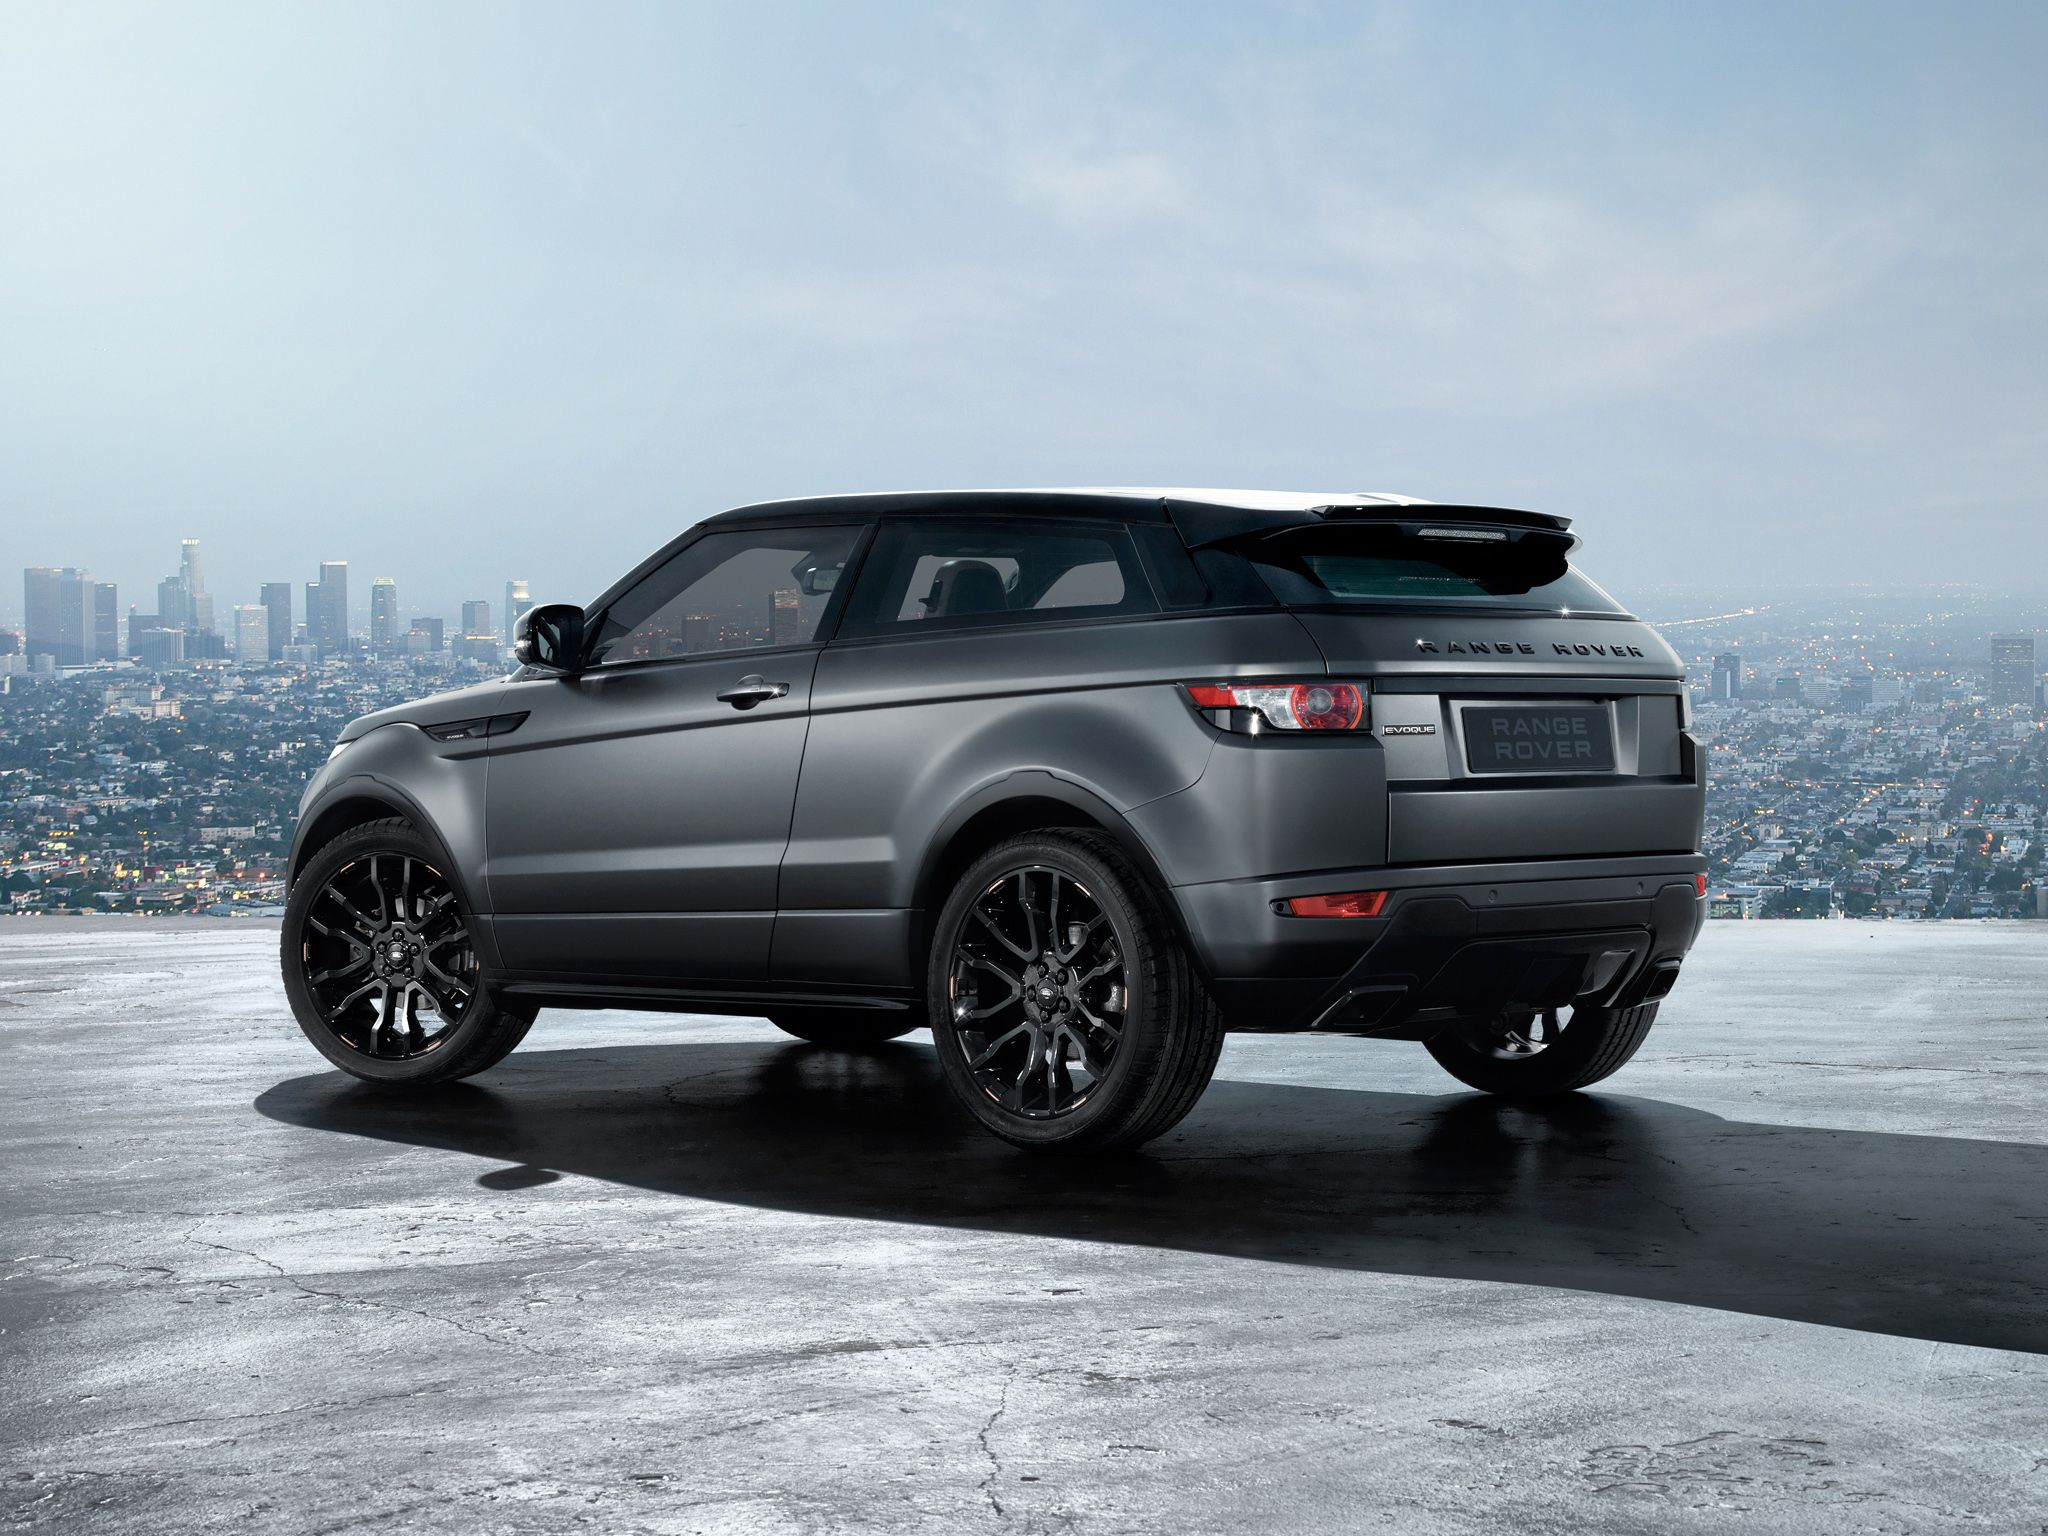 Pin by Mark Walters on Nice things Range rover evoque